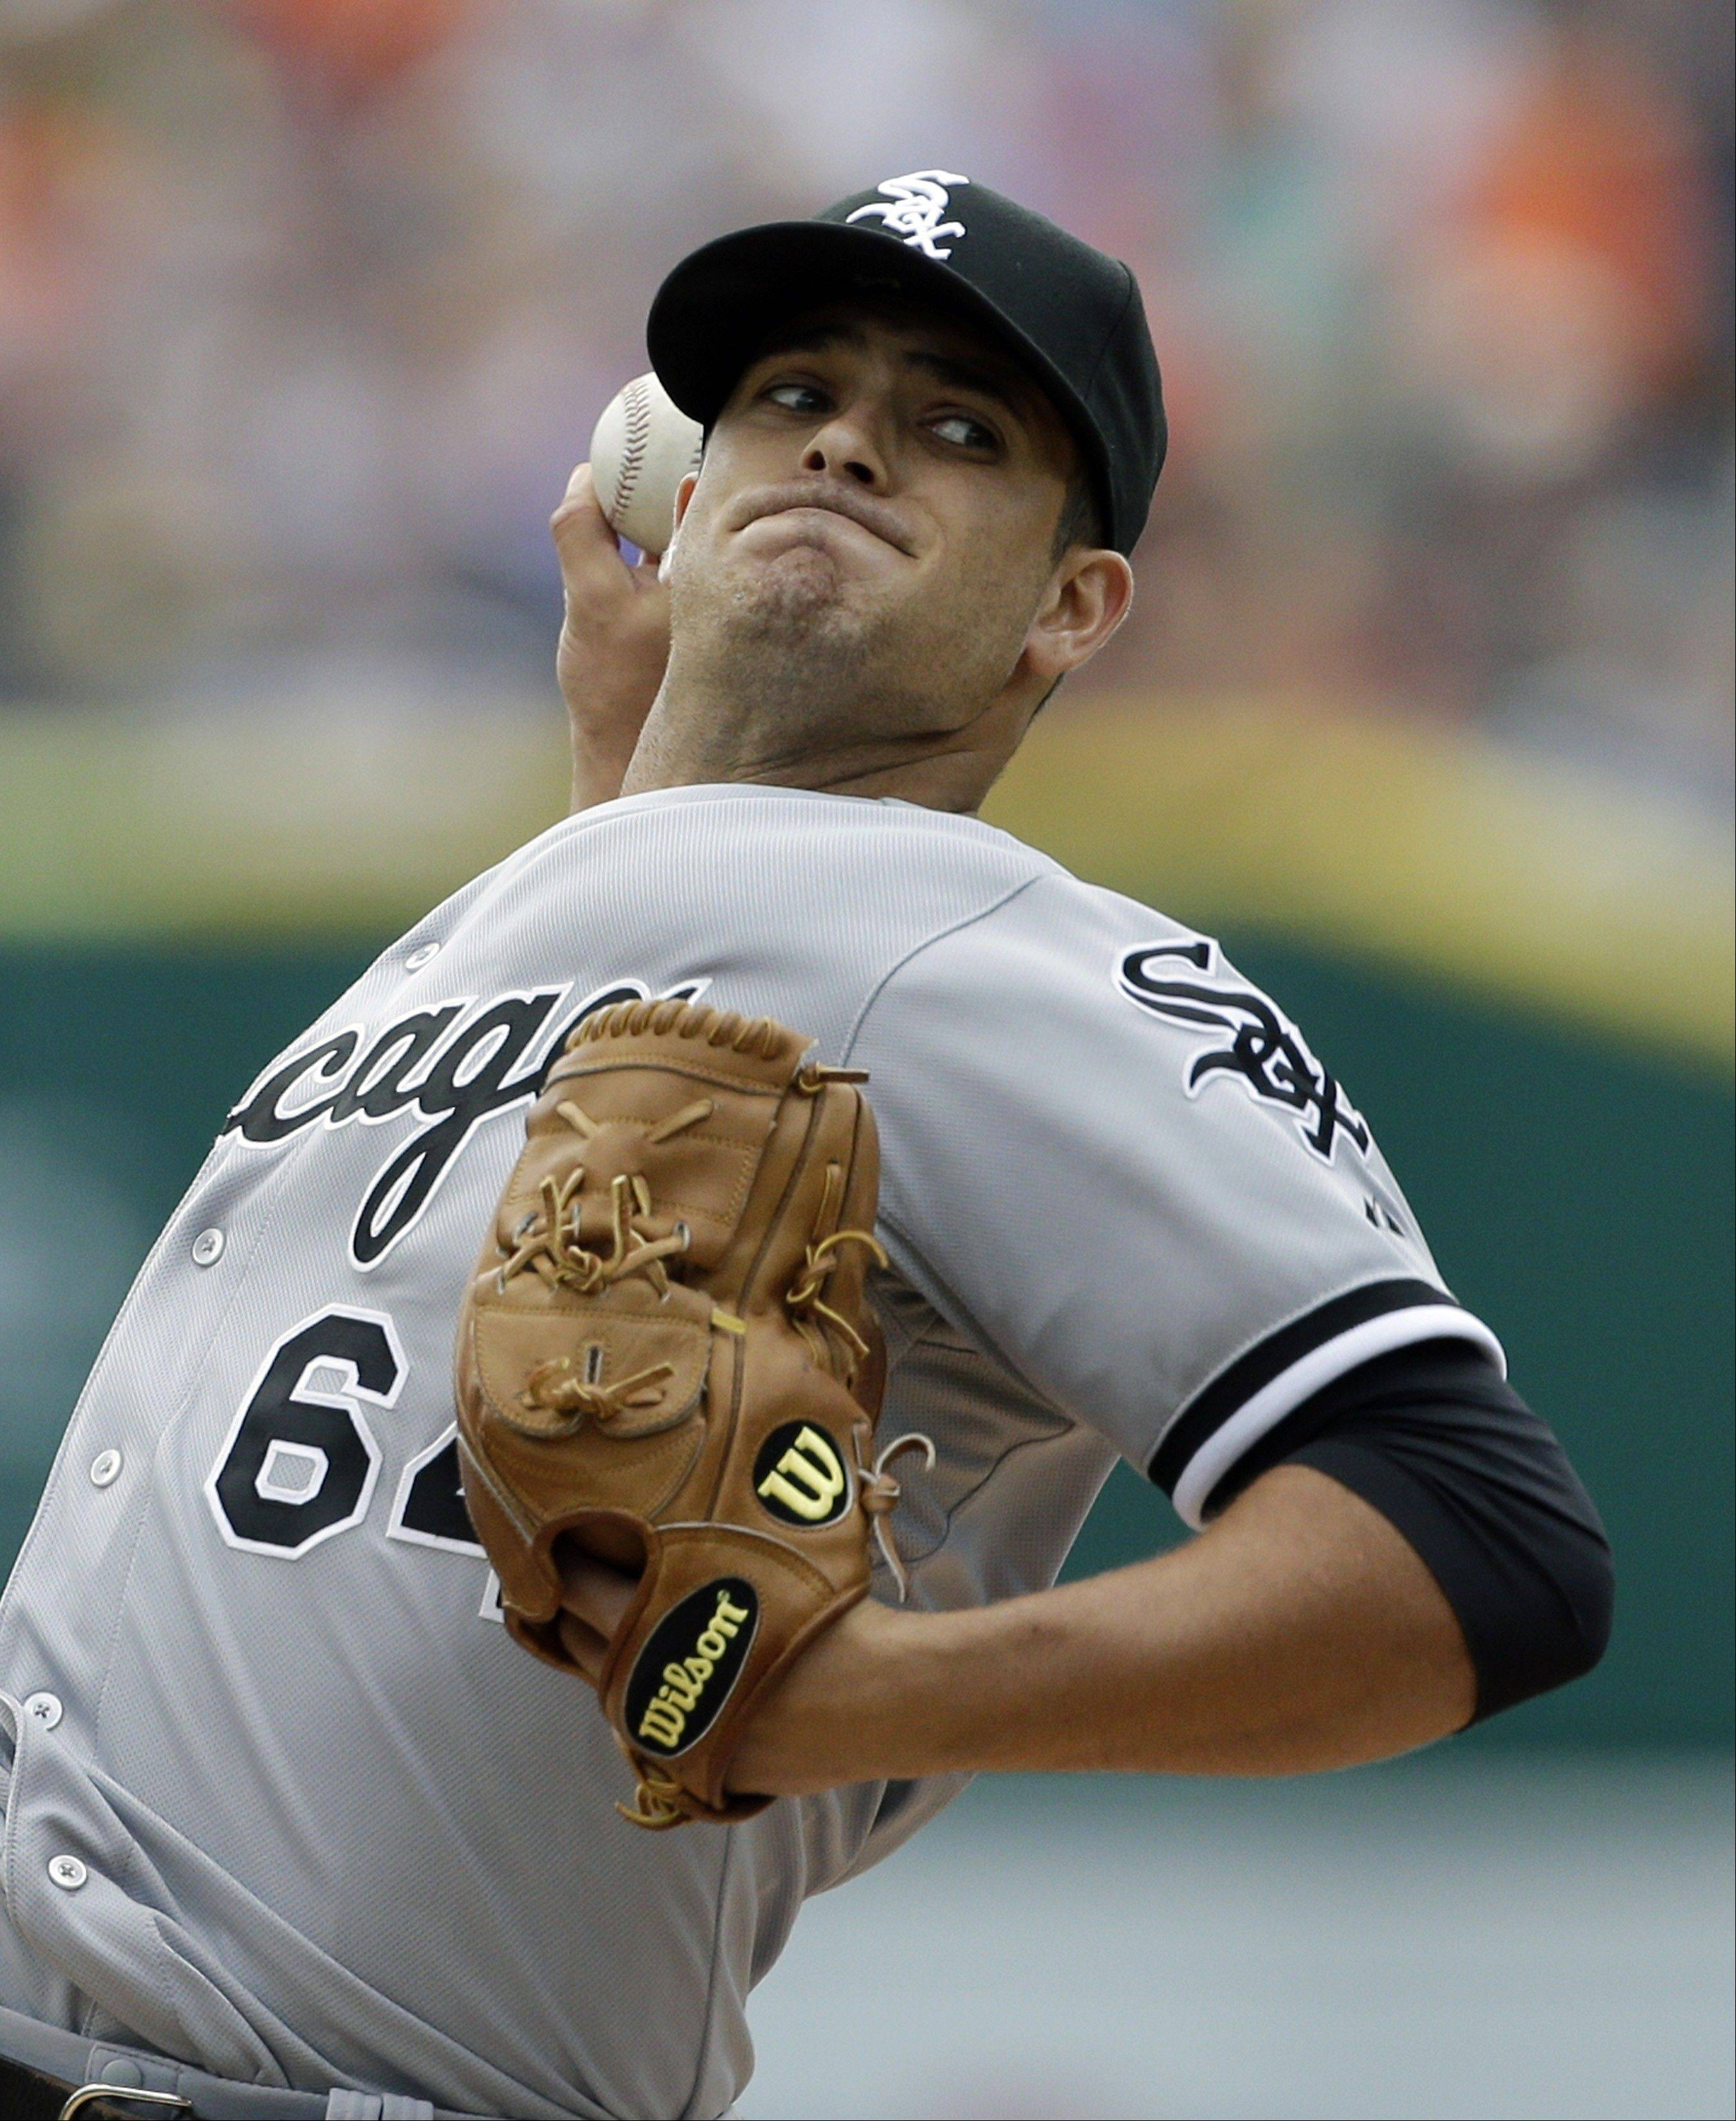 In 2 starts so far for the White Sox, pitcher Andre Rienzo has a 1.38 ERA.